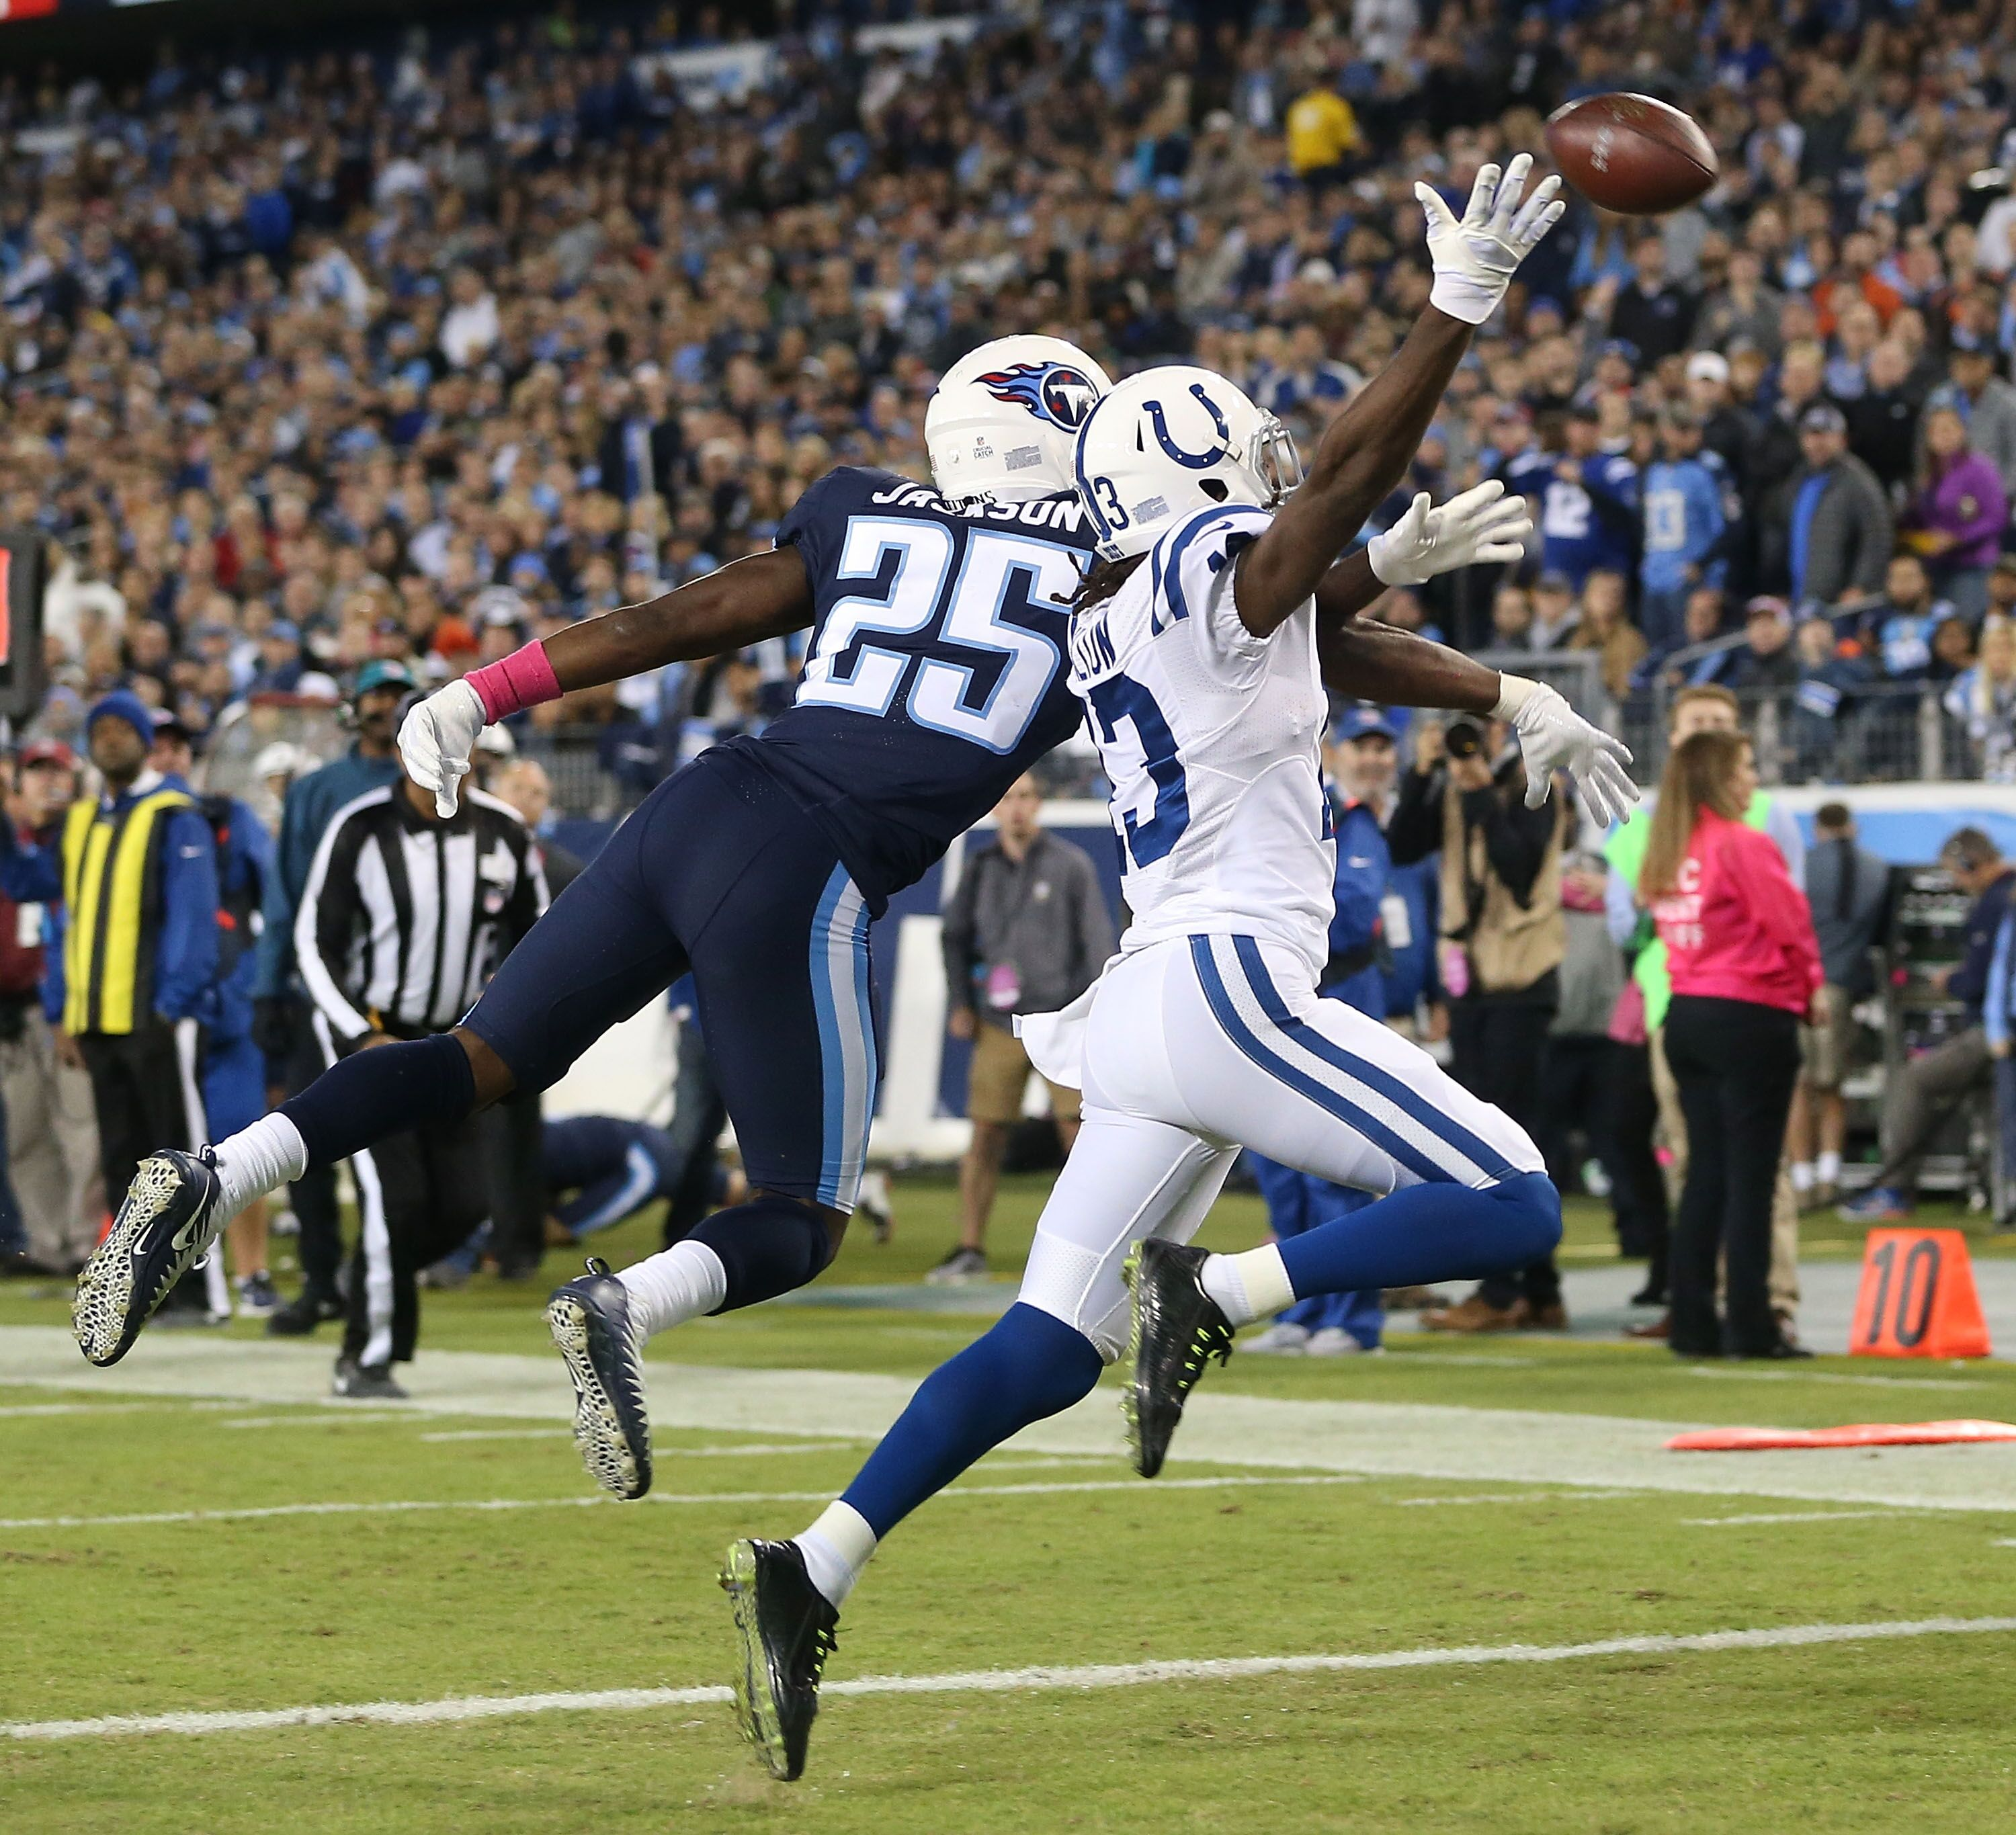 862173354-indianapolis-colts-v-tennessee-titans.jpg